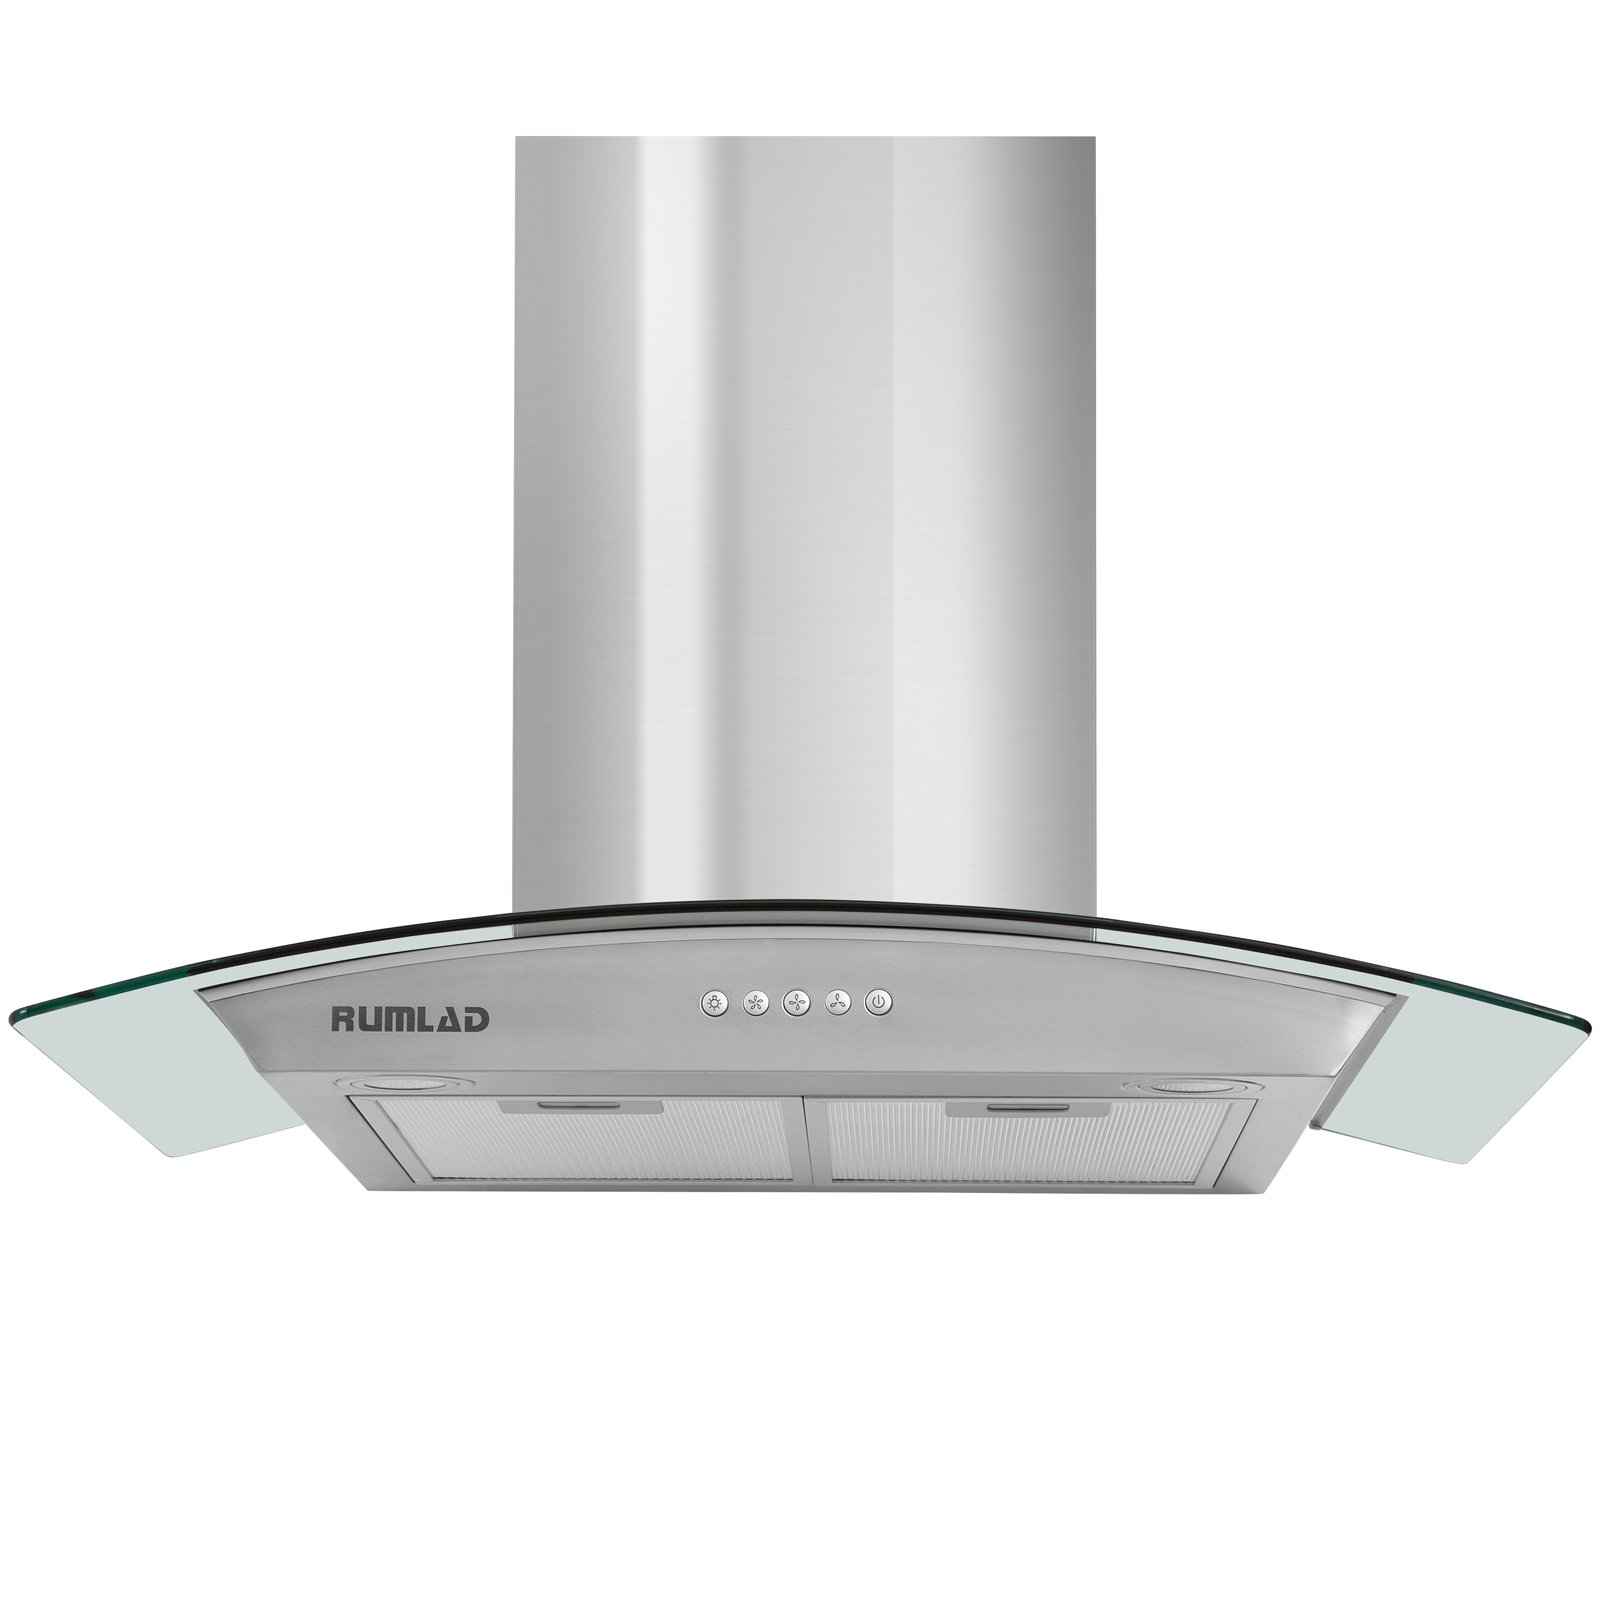 KUPPET 30'' Kitchen 430 Stainless Steel/Tempered Glass Wall Mount Range Hood with Aluminum Mesh Filter, W/Bright LED Lights and Classical Push Button 3 Speed Control, Silver